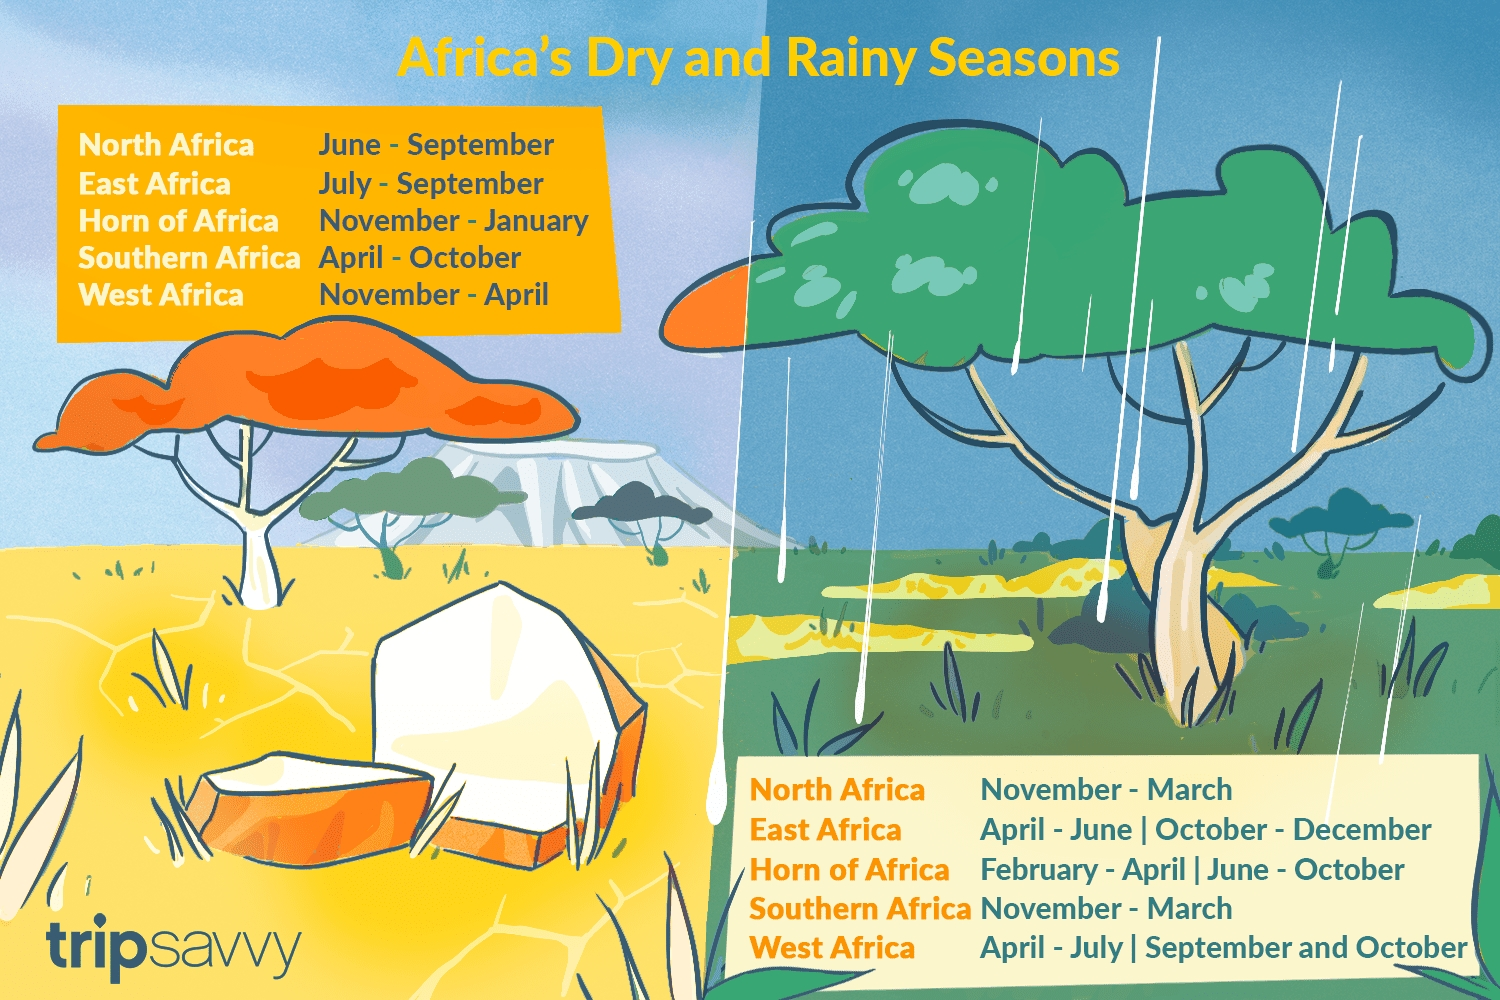 A Brief Overview Of Africa'S Dry And Rainy Seasons